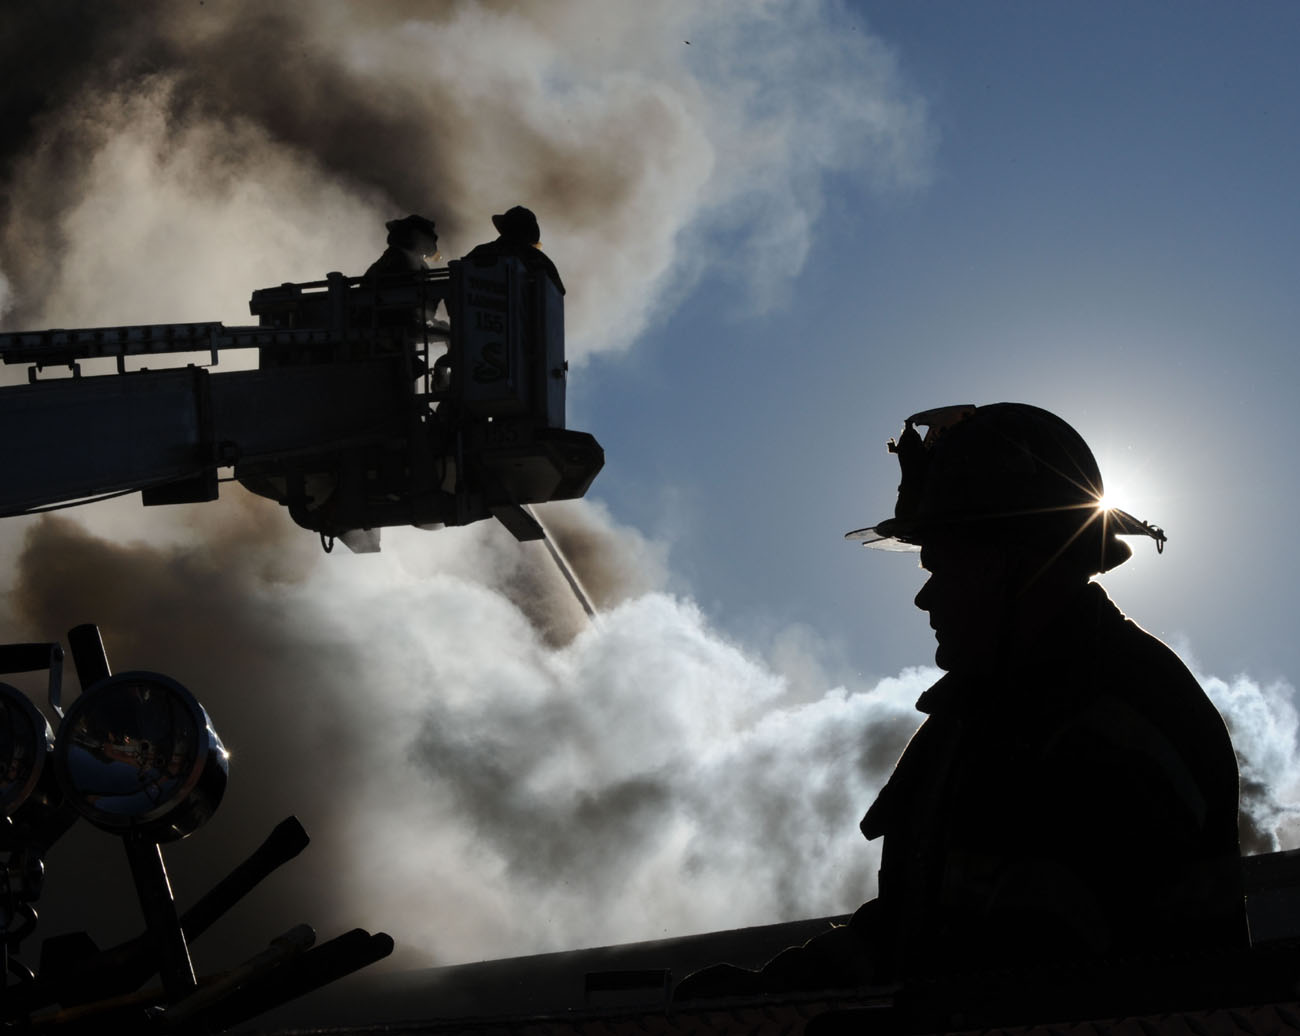 Firefighter Tom Ryan and other members of Ladder 155 are seen at a third alarm fire that broke out at 138-10 Farmers Blvd. in Queens on September 19, 2009.